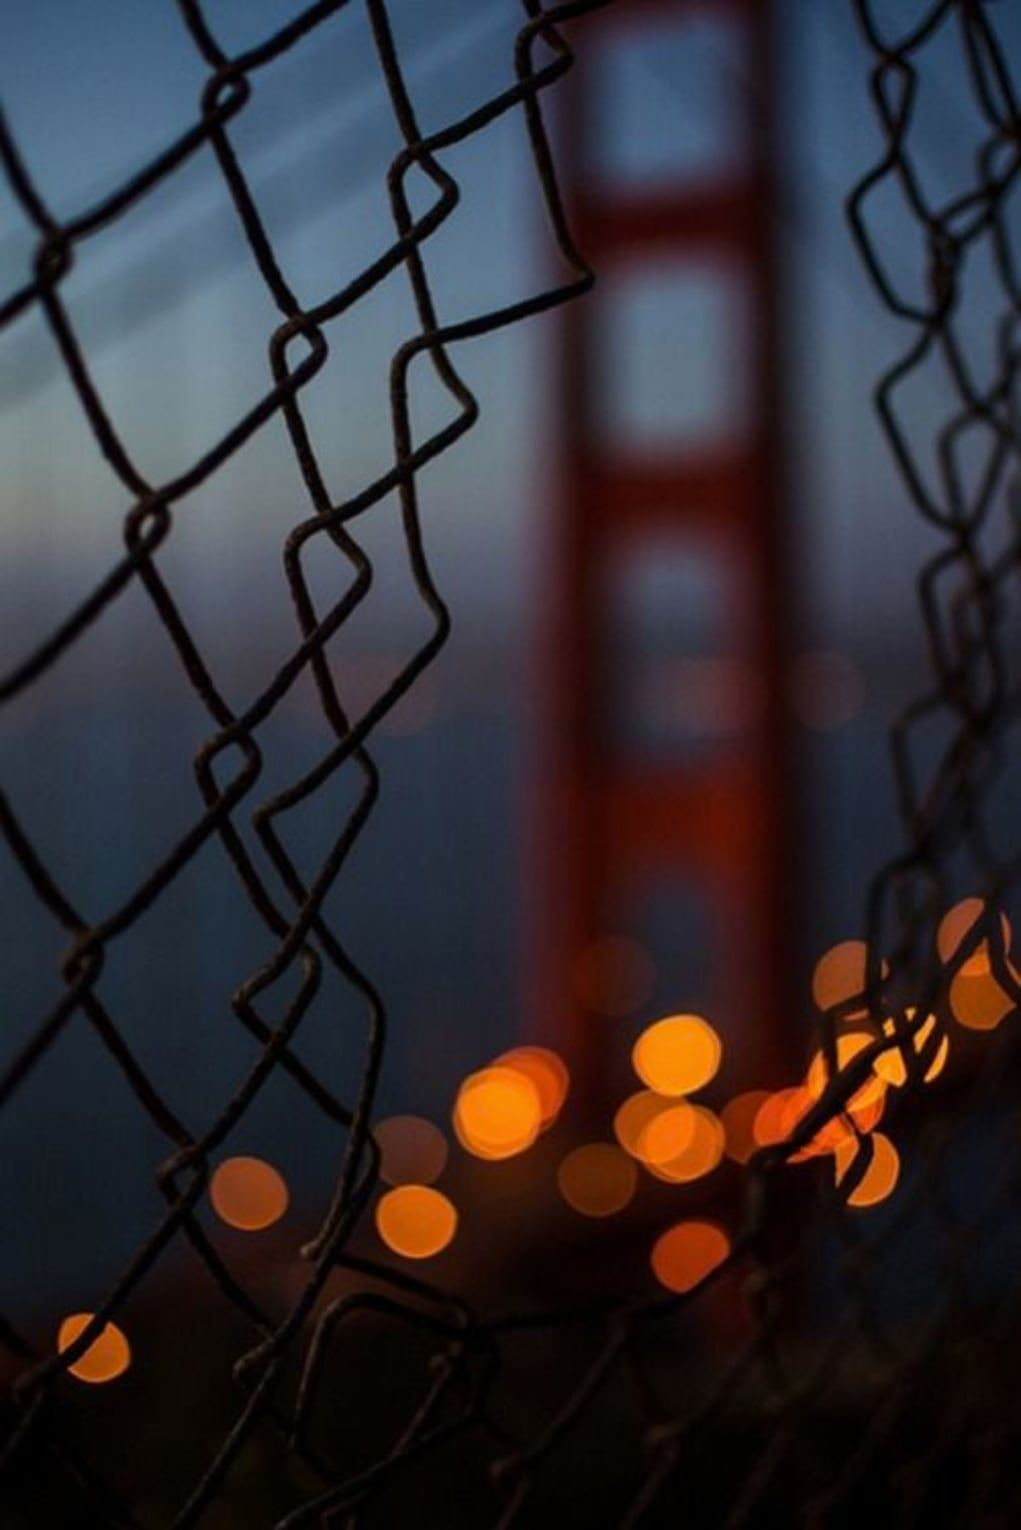 35 Wonderful Examples of Bokeh Photography